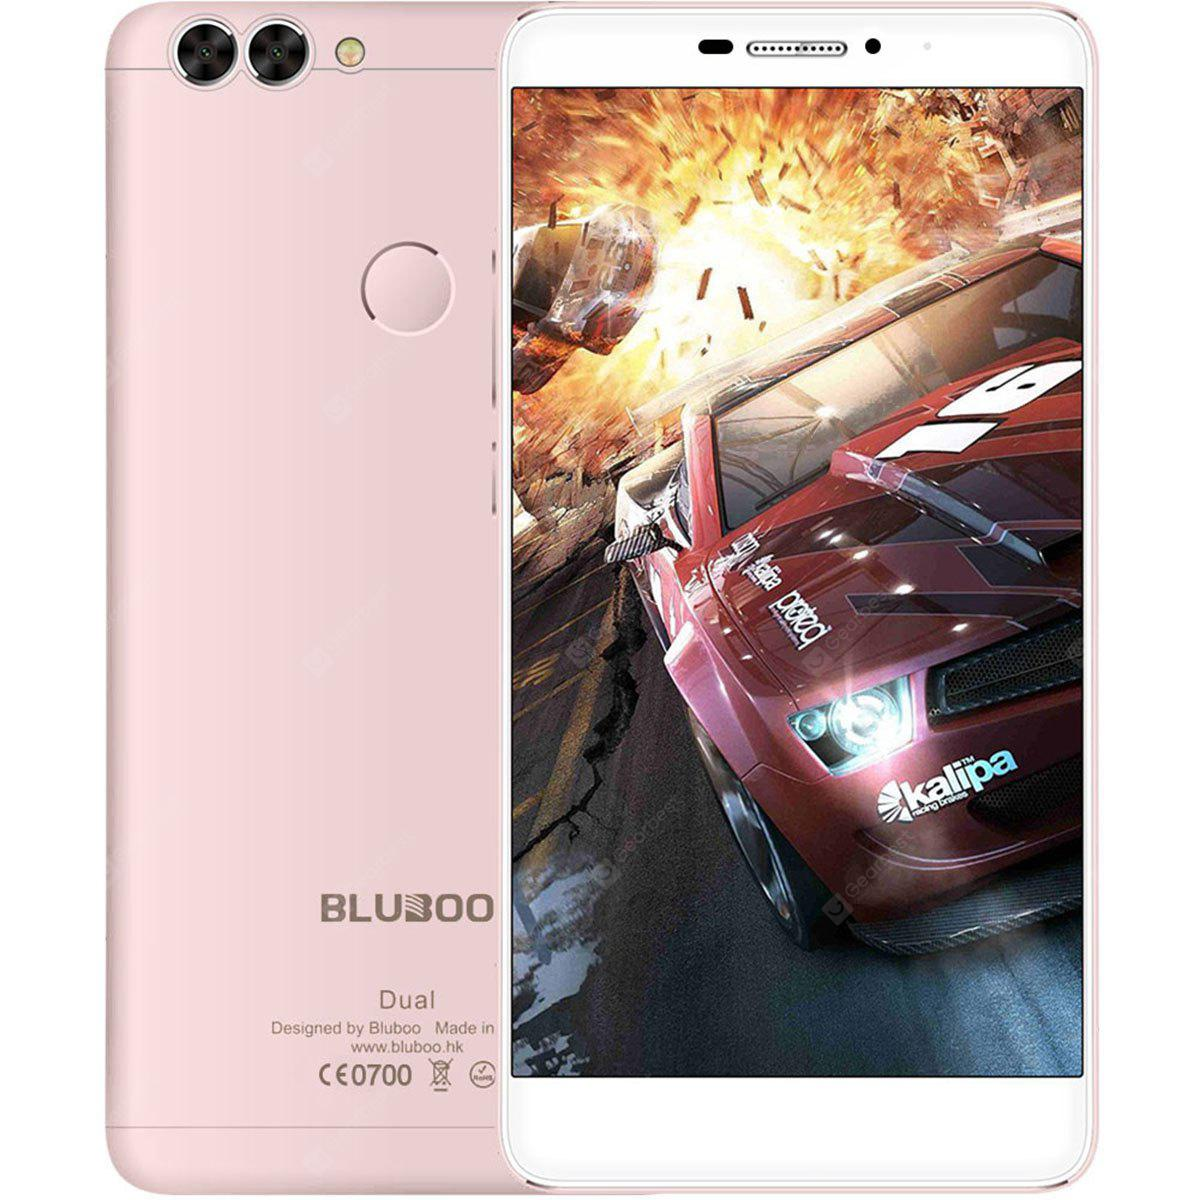 BLUBOO Dual Phablet 4G